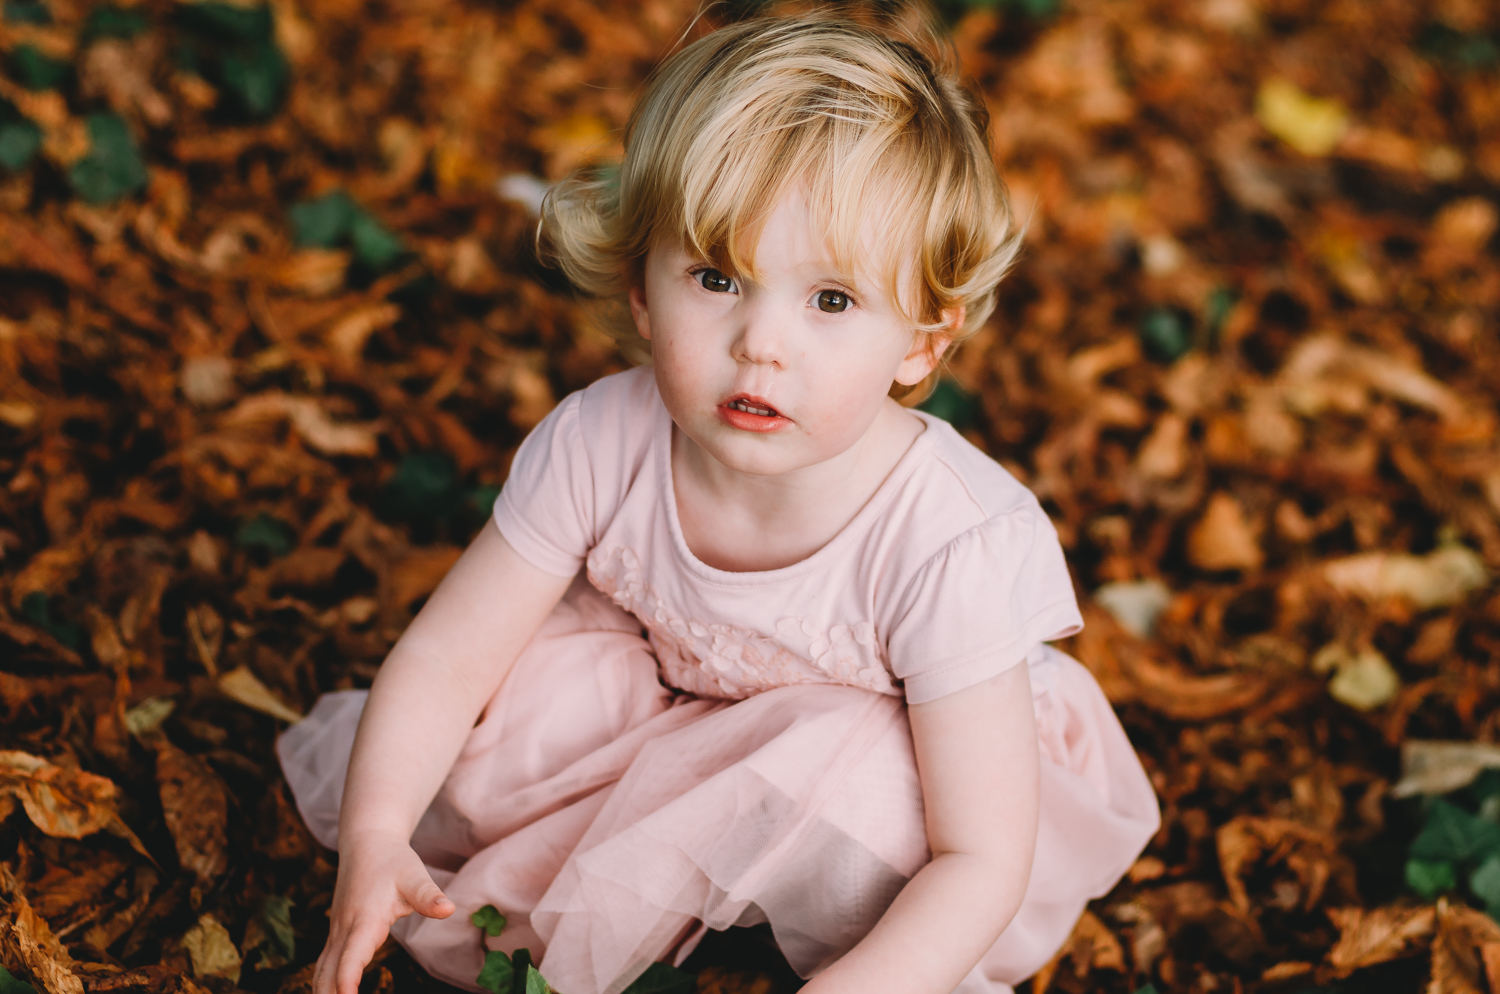 Girl in Pink dress sitting in leaves